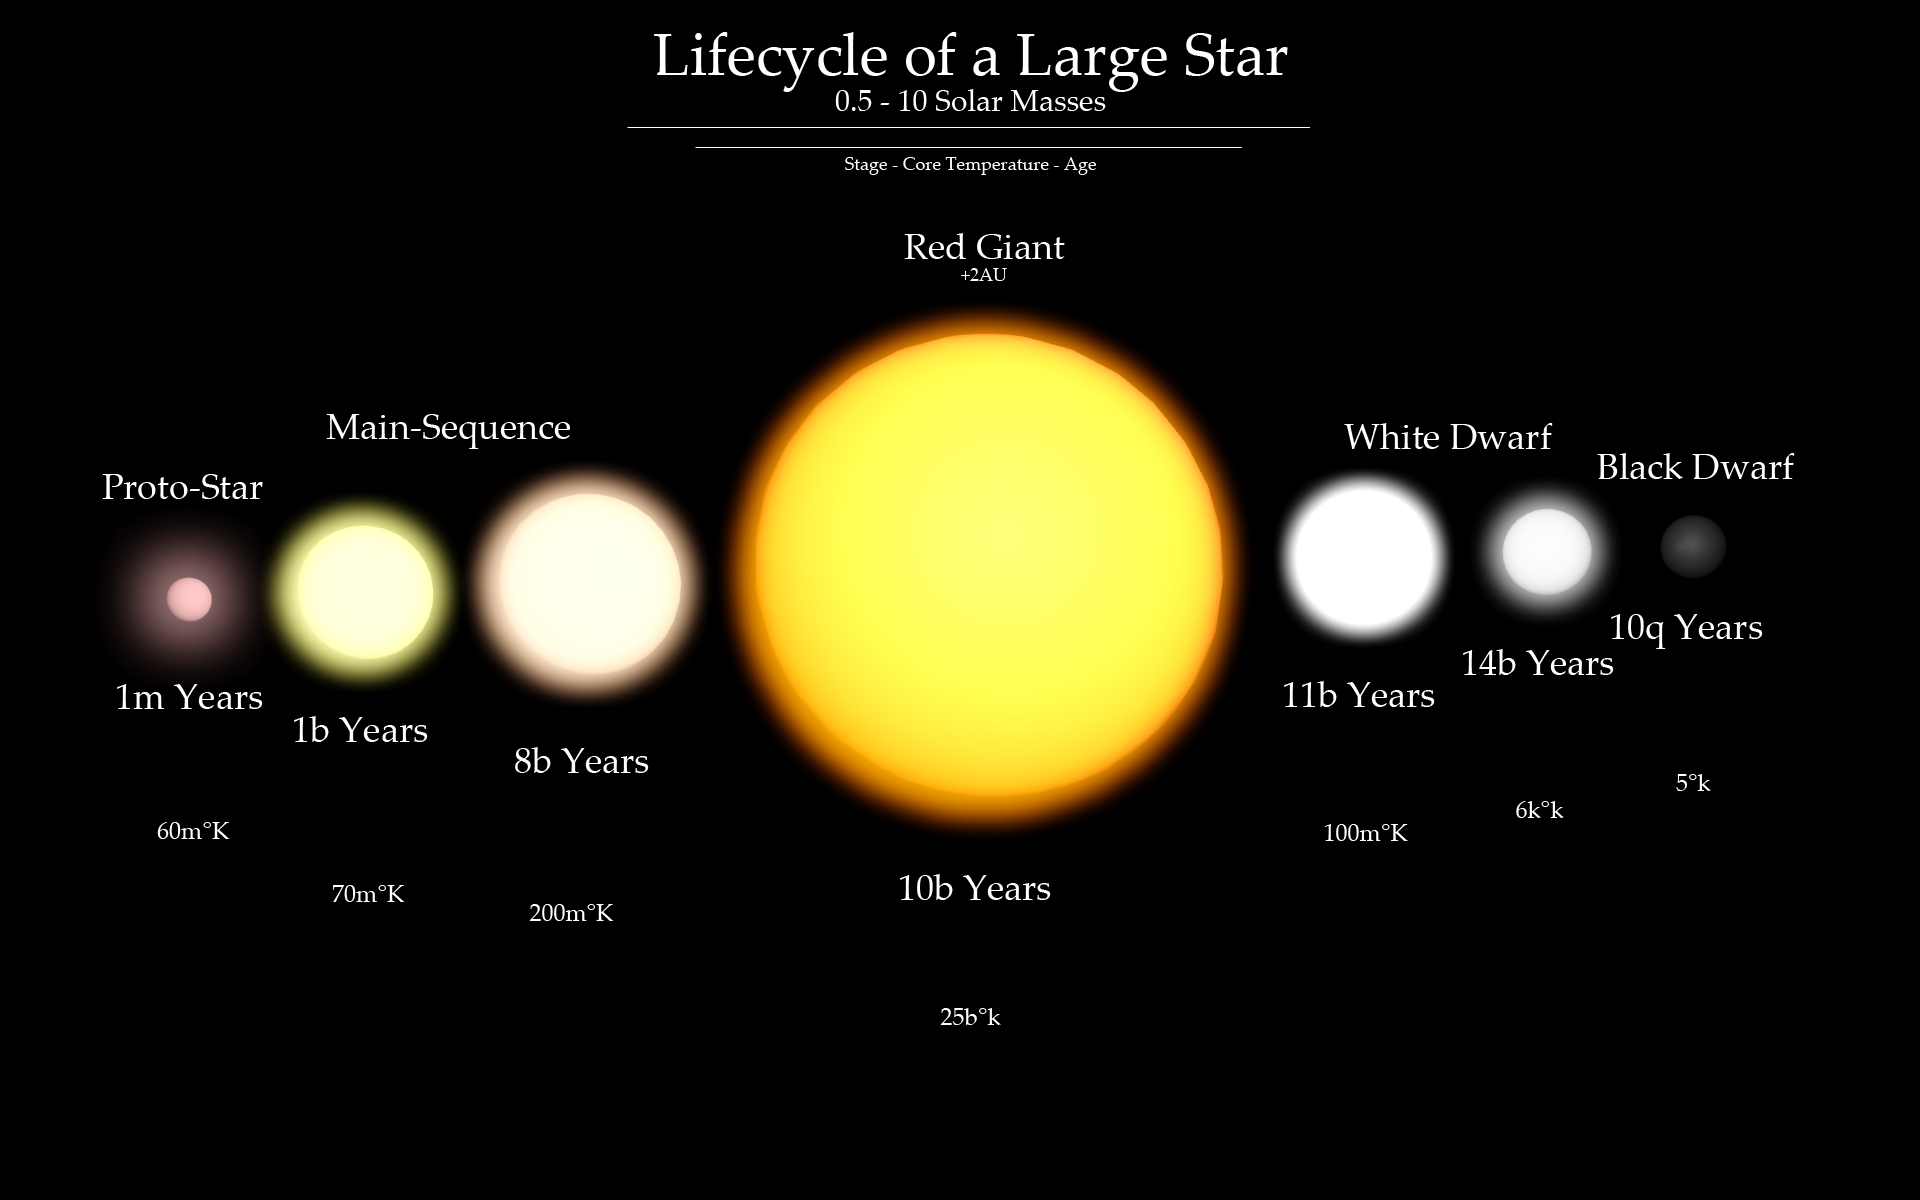 Lifecycle of a Star by WillGtl on DeviantArt